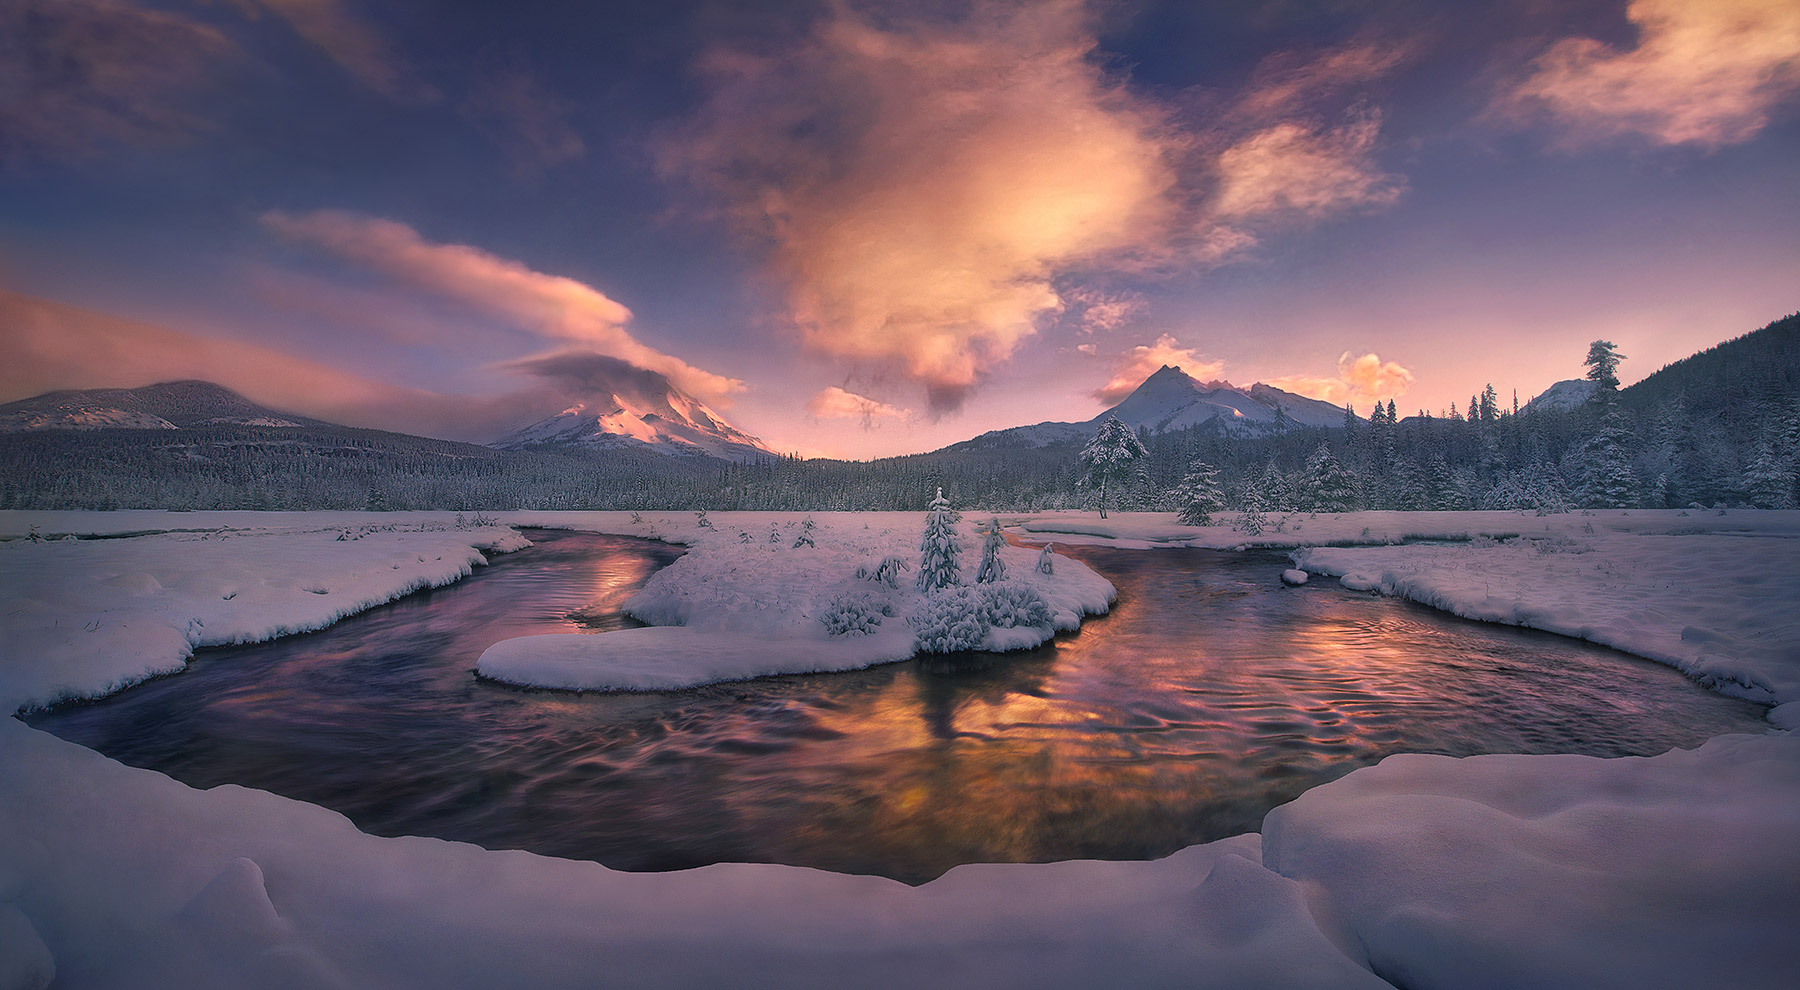 New snowfall adorns the landscape within Oregon's Three Sisters Wilderness, looking towards South Sister and Broken Top peak...